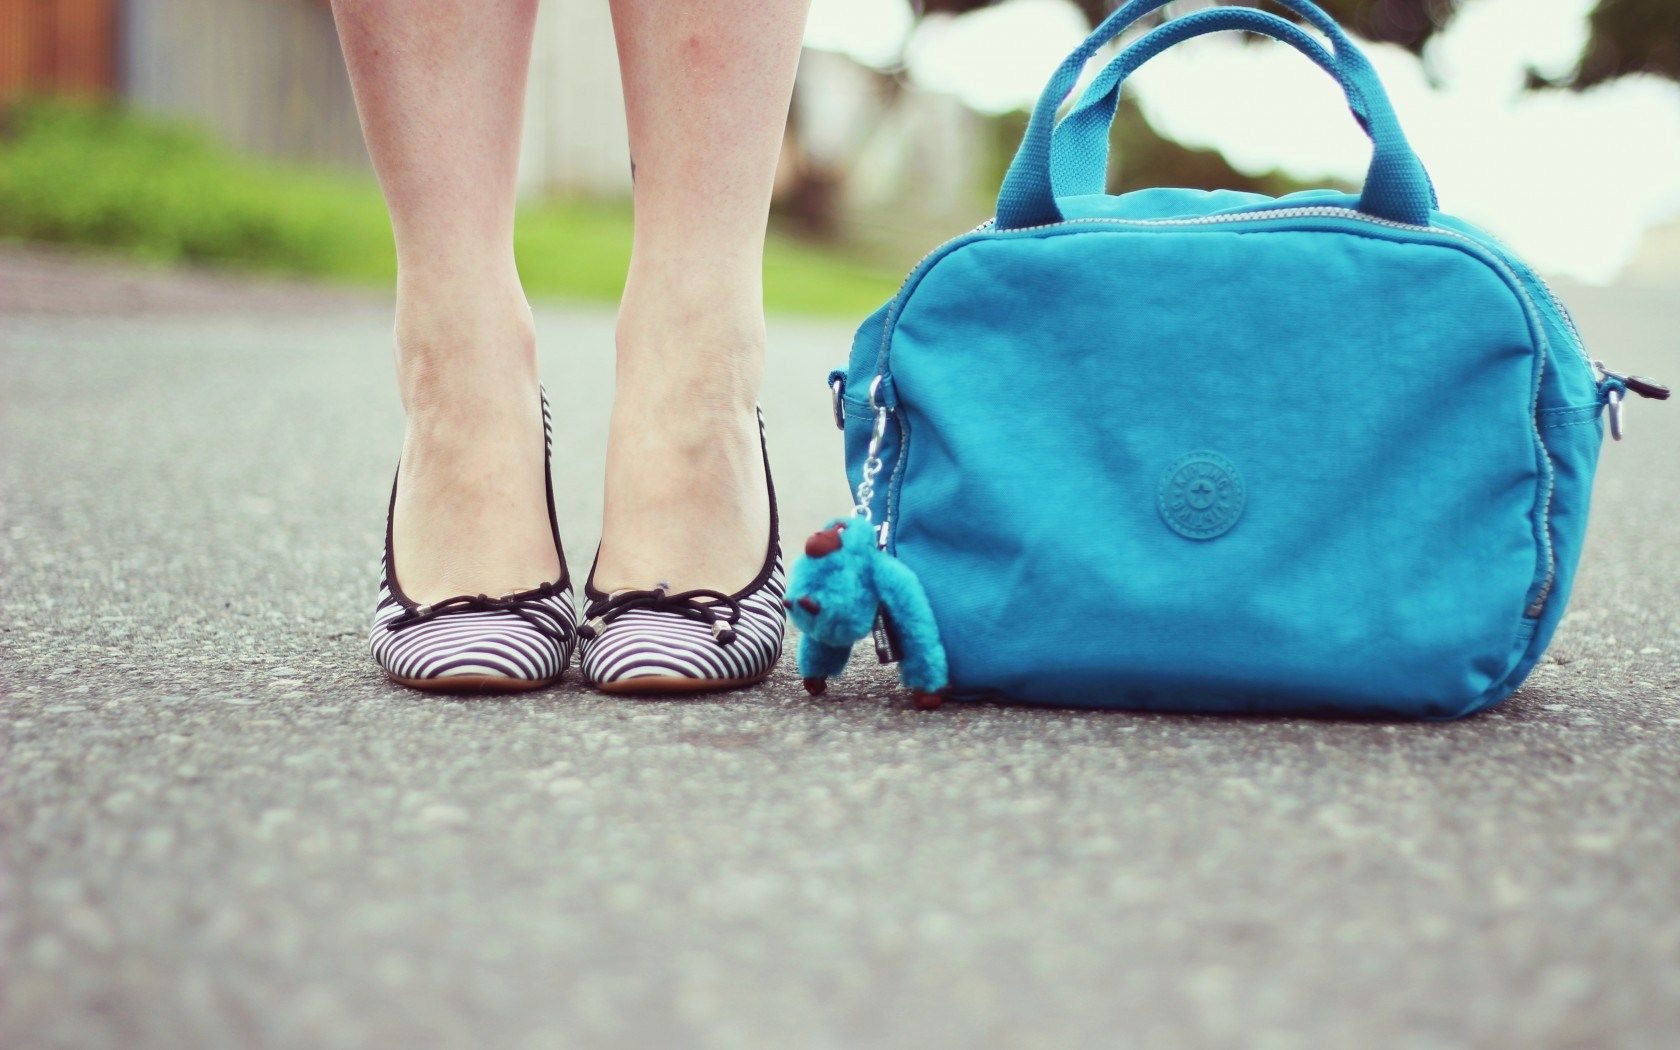 Shoes Handbag Hd Wallpaper Freehdwalls